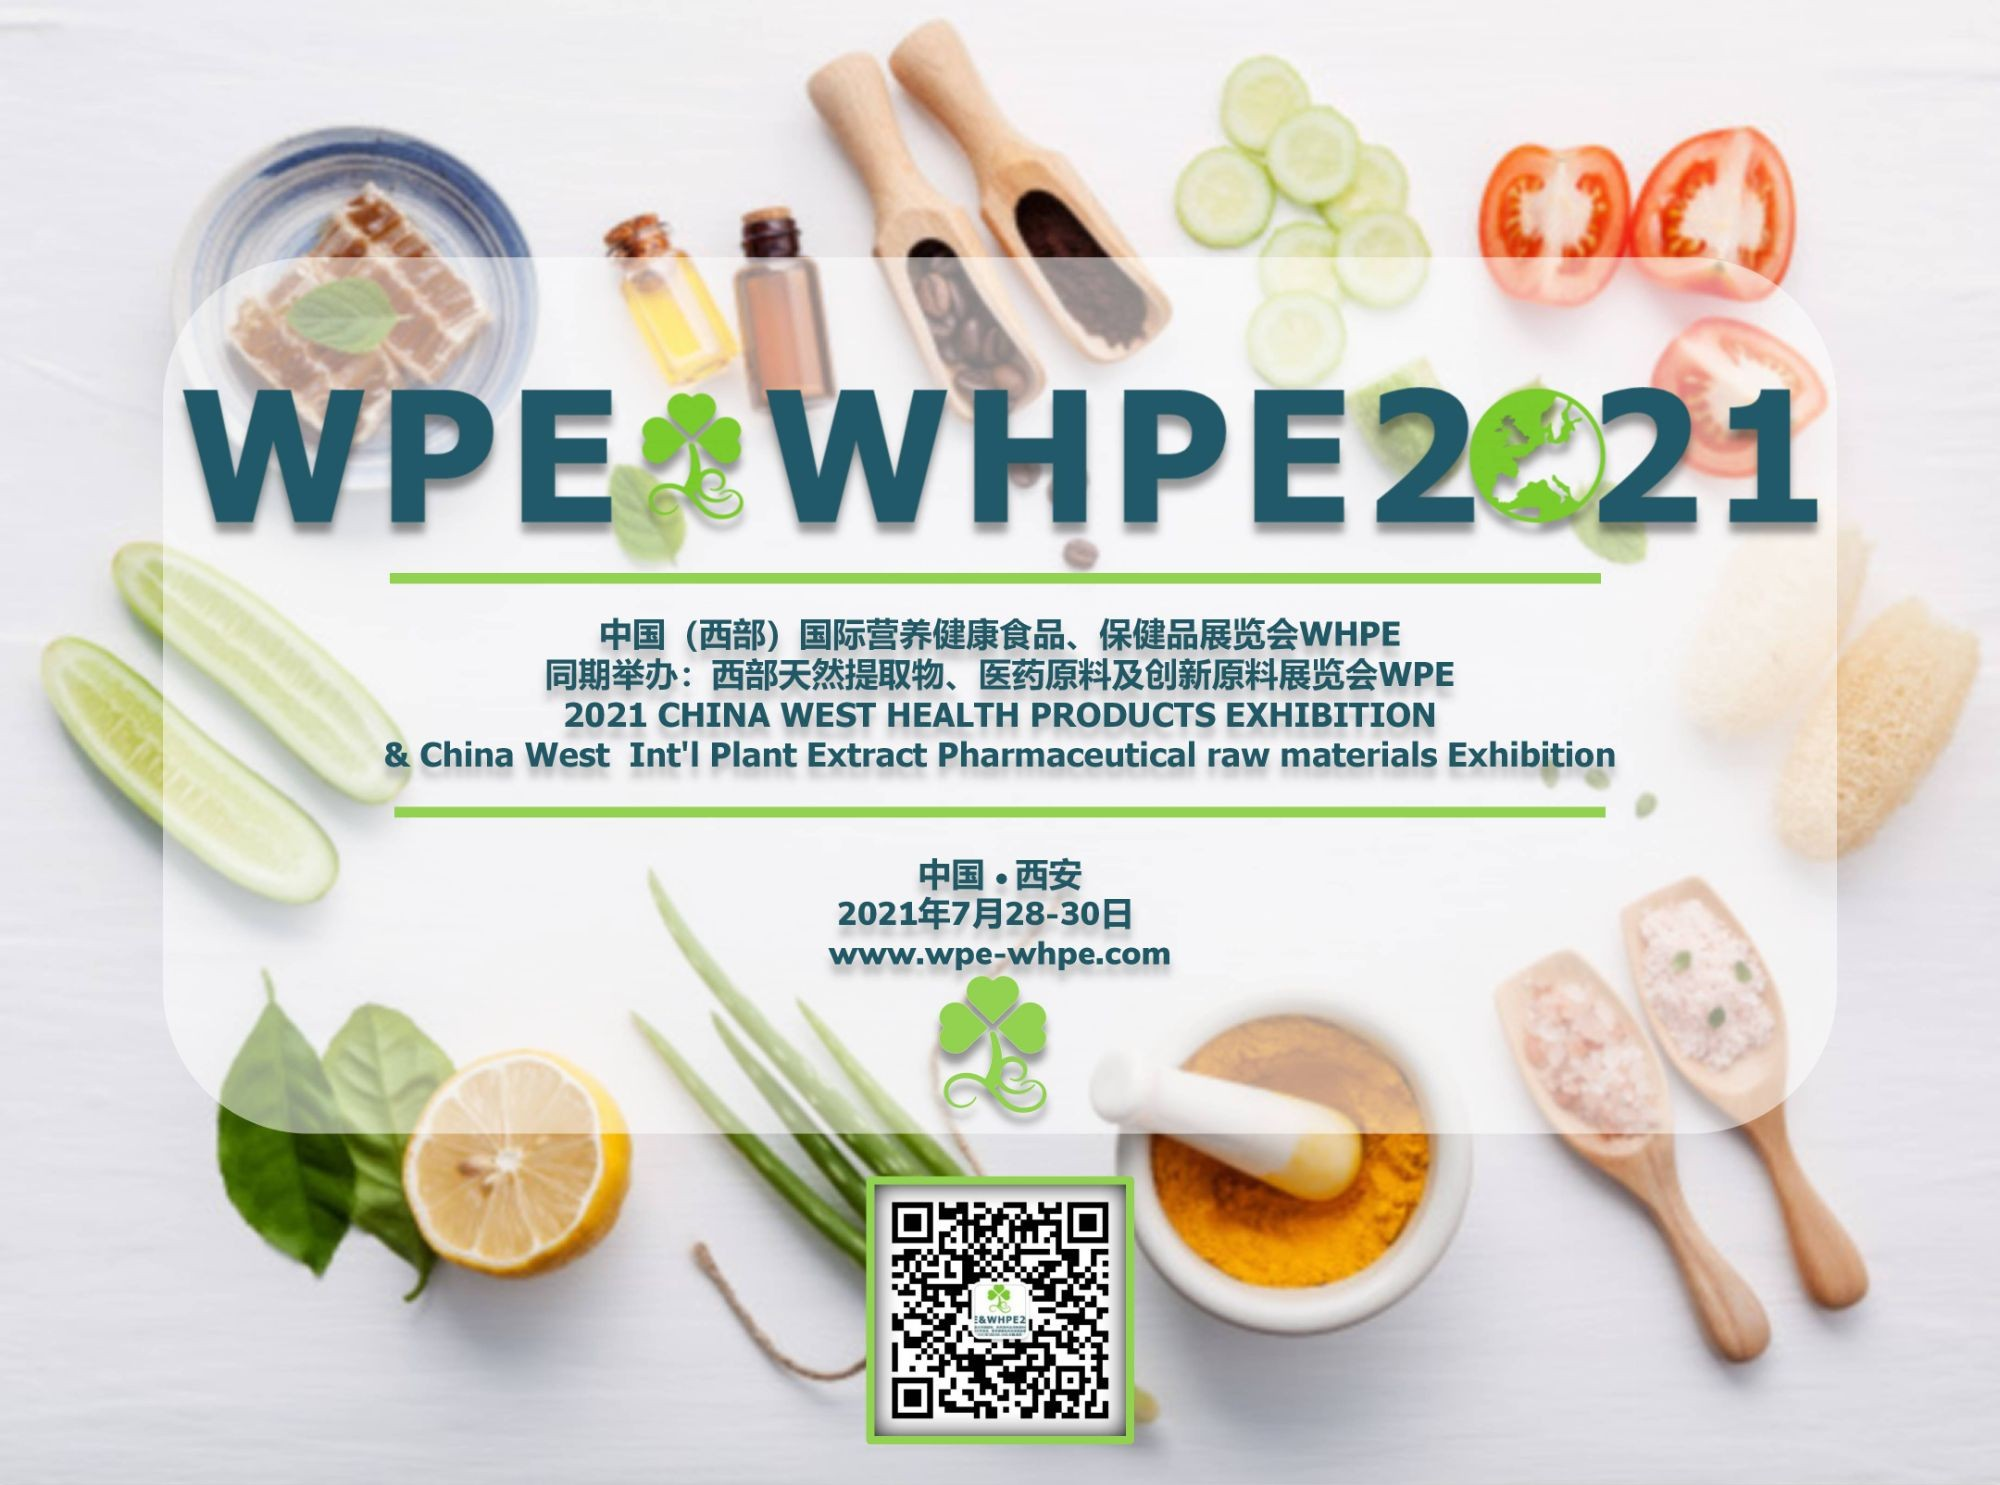 Kang Biotech will attend WPE&WHPE 2021 in Xi'an